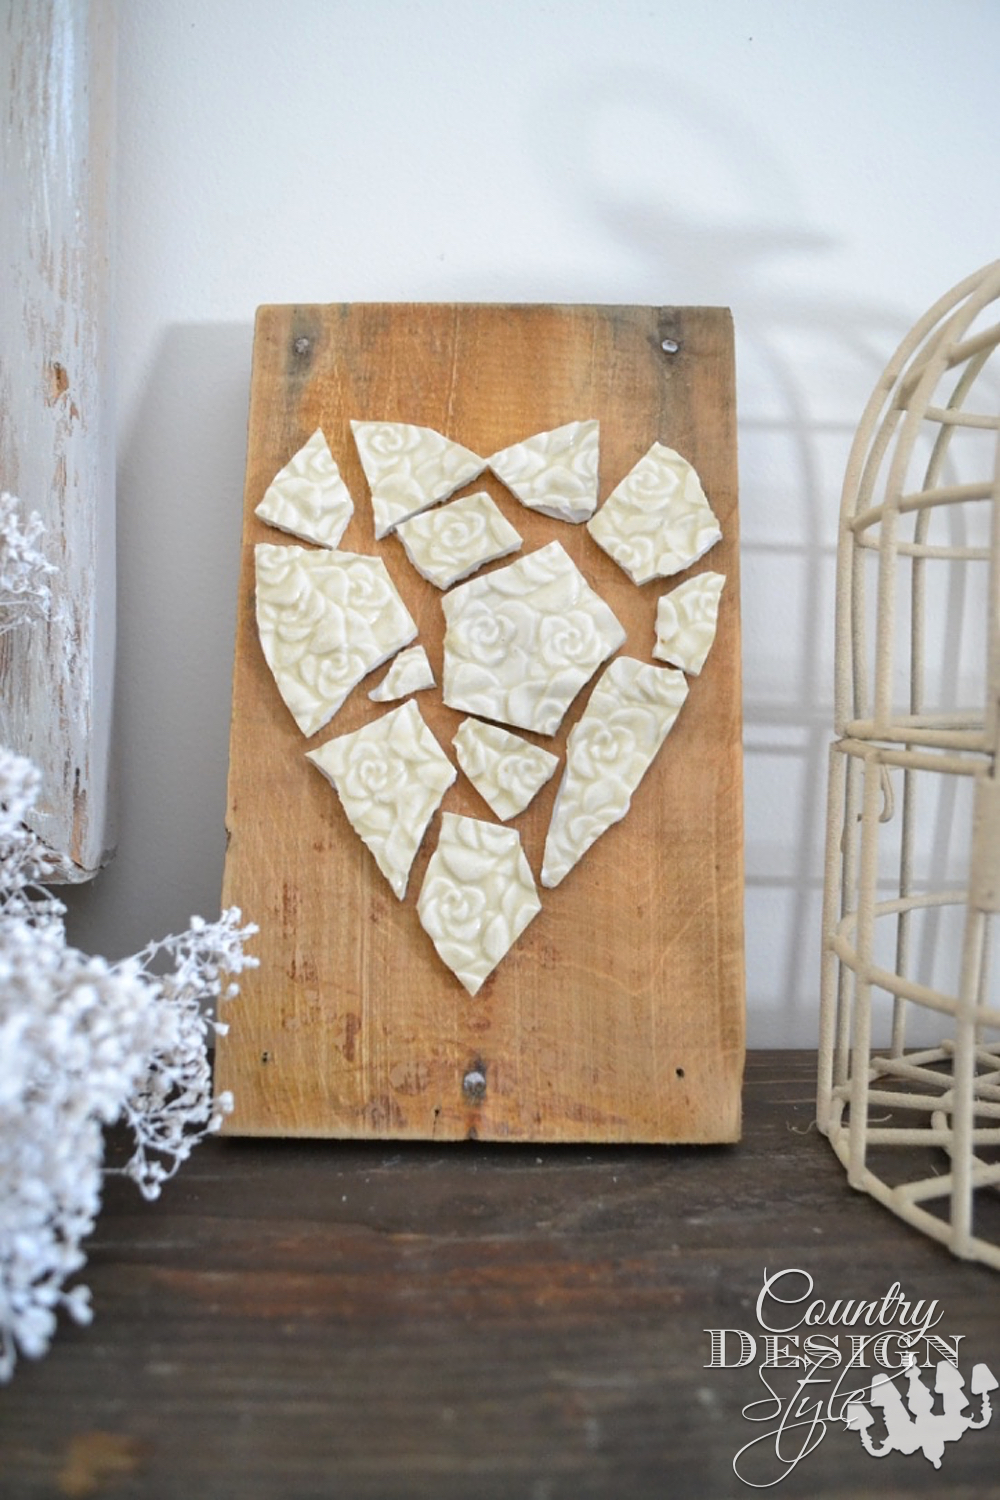 Mosaic Heart Plaque pn | Country Design Style | countrydesignstyle.com